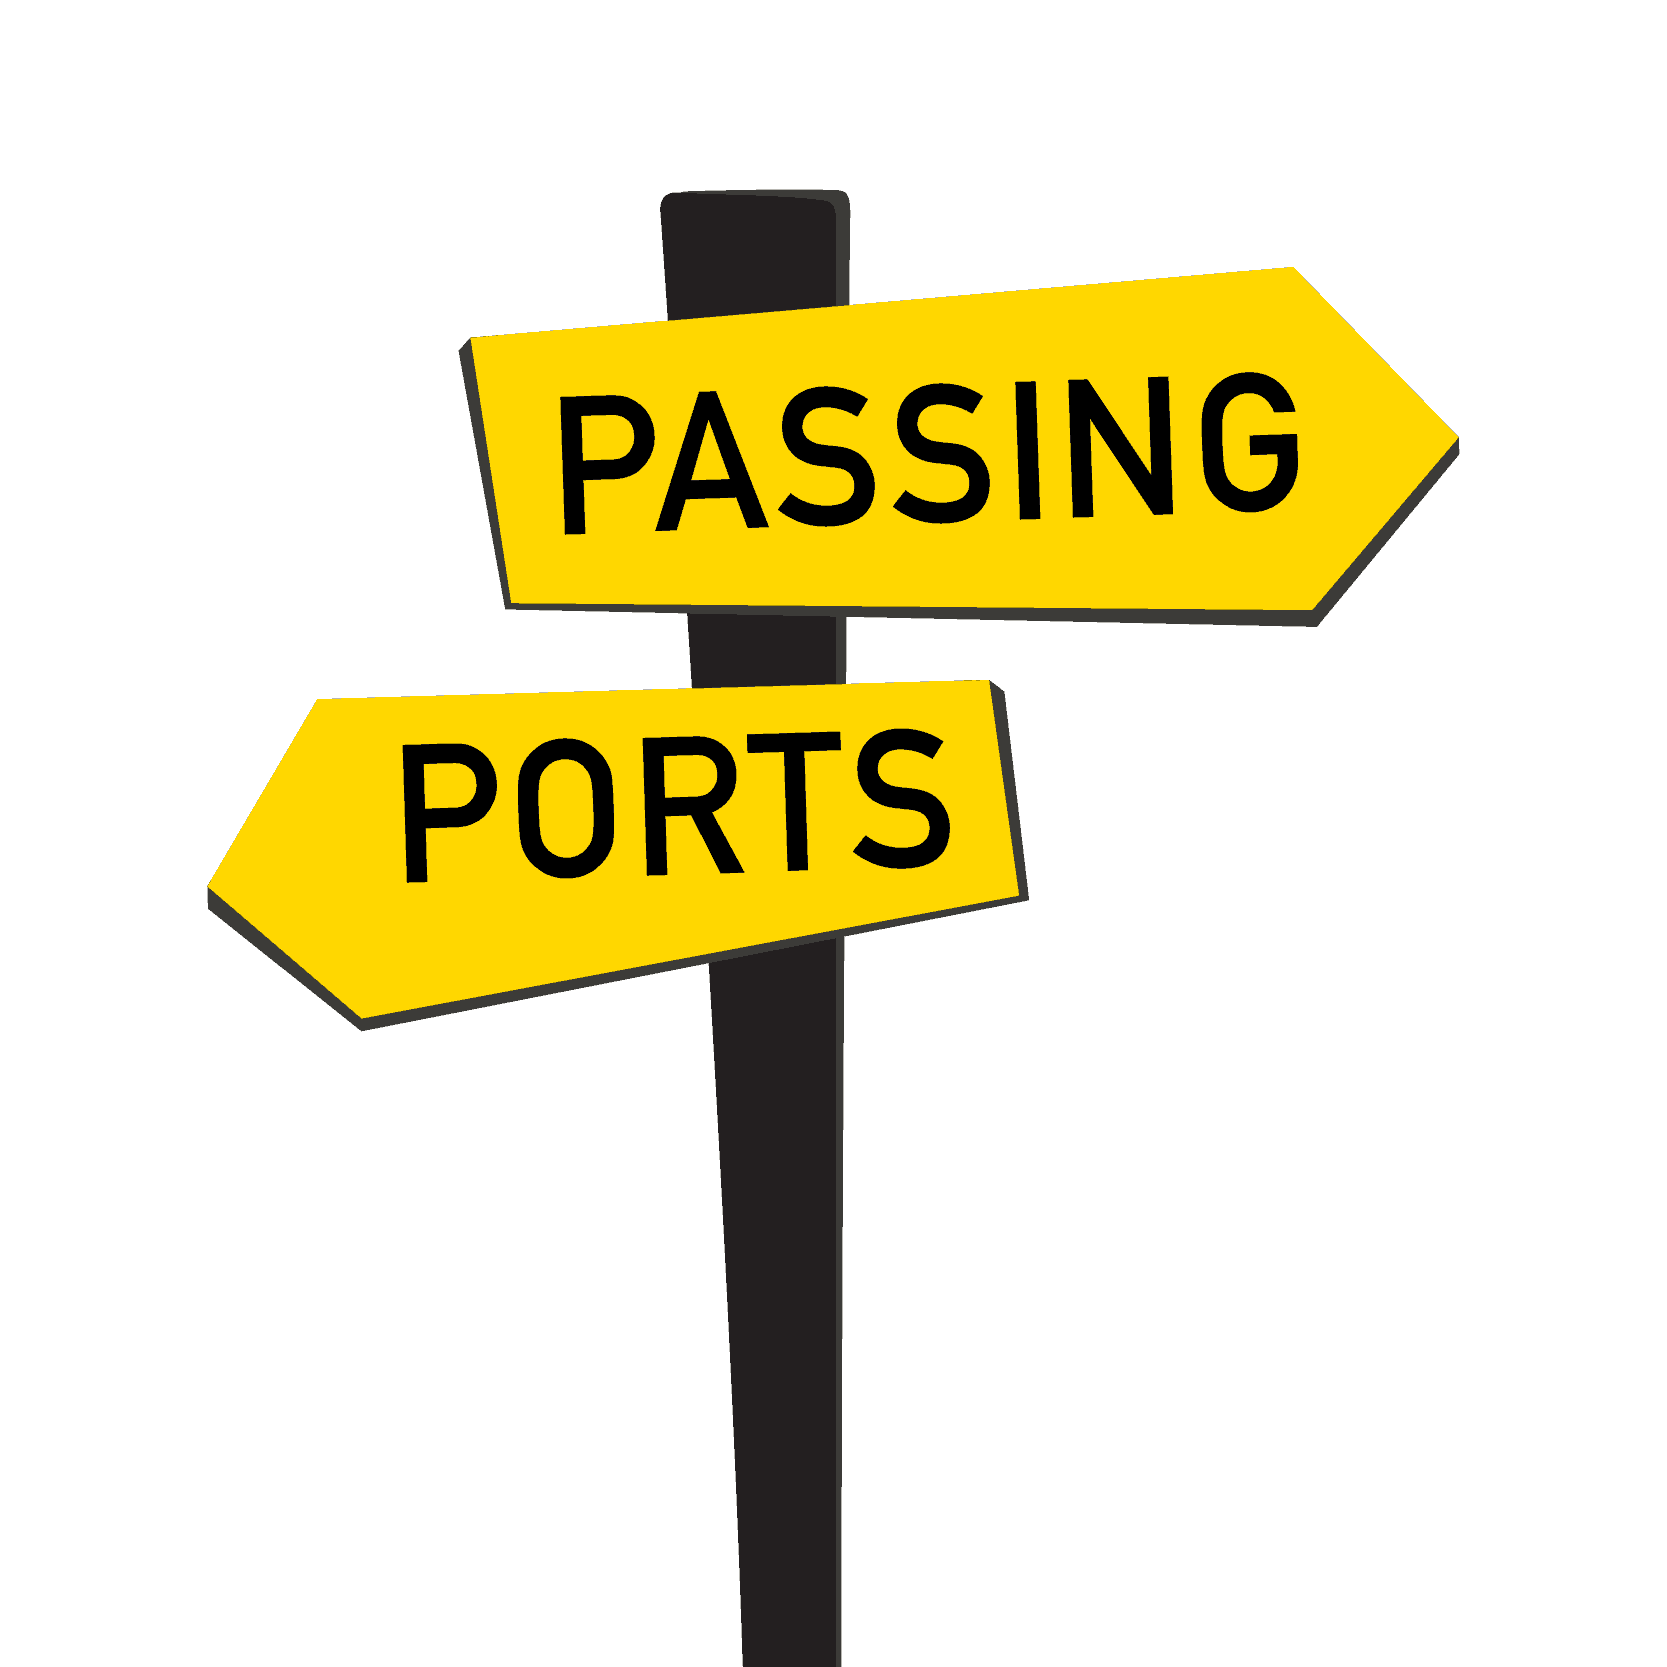 Passing Ports